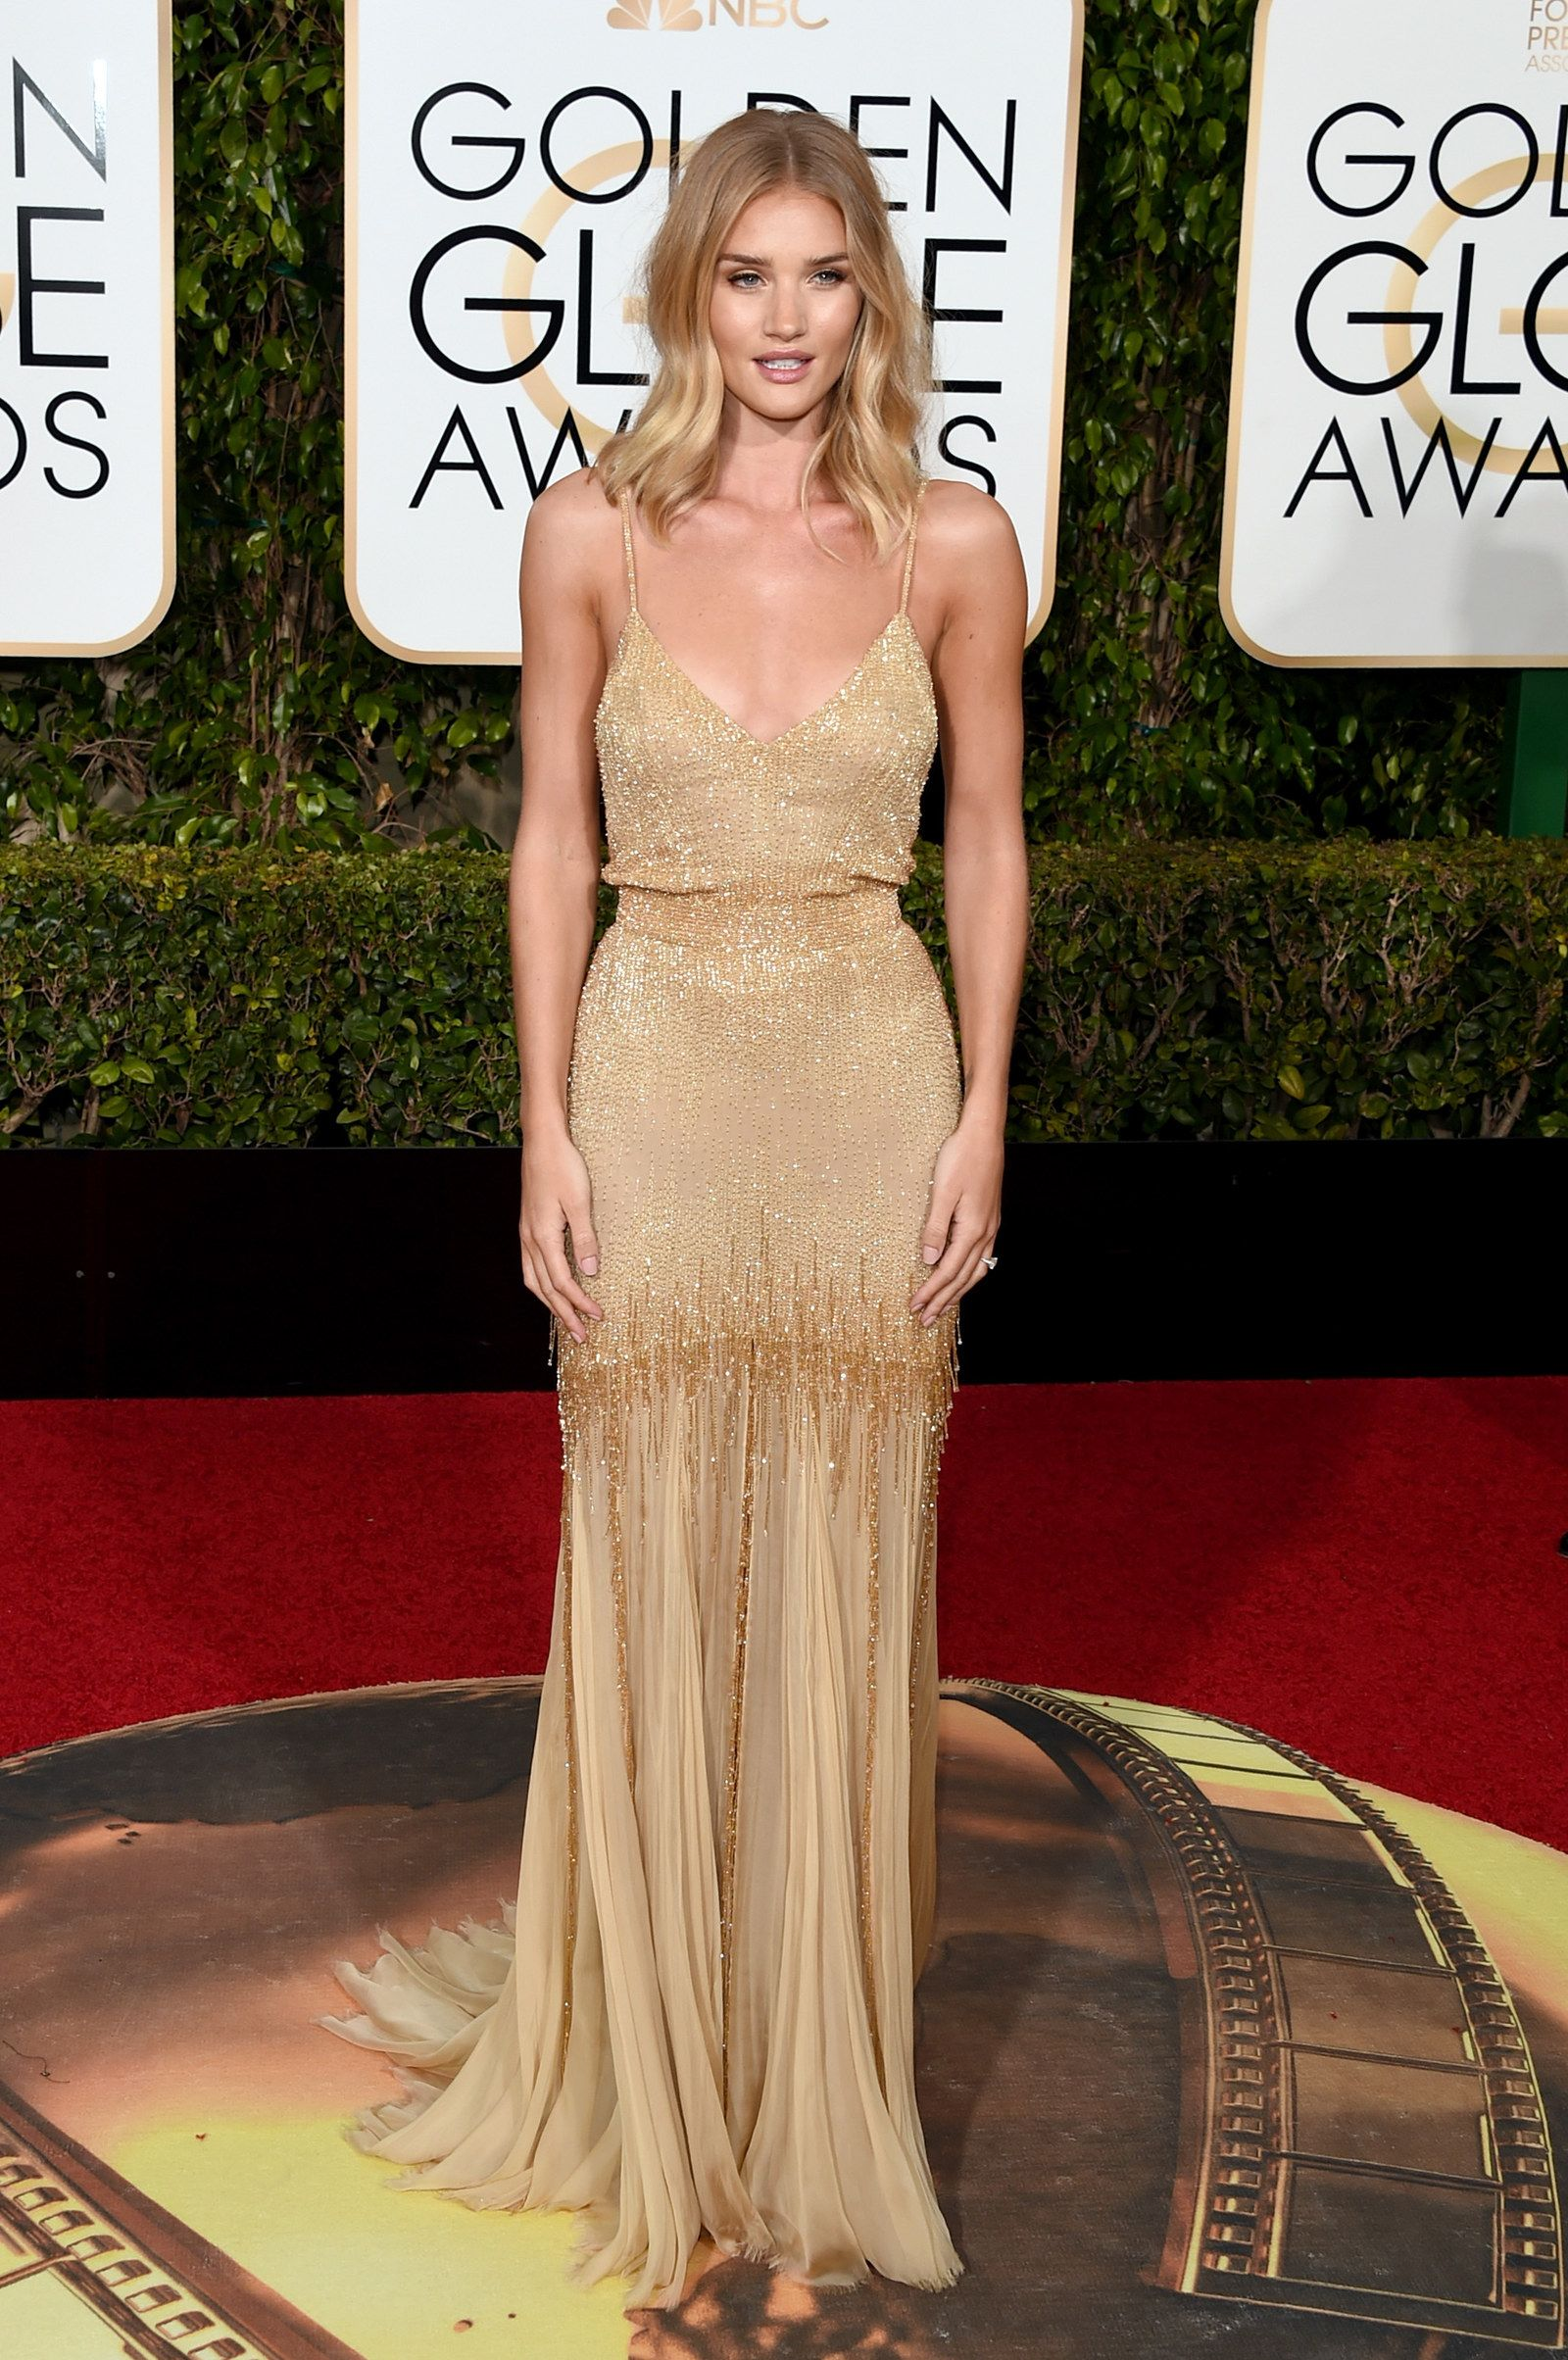 Golden Globes 2016 Red Carpet Fashion | Vanity Fair